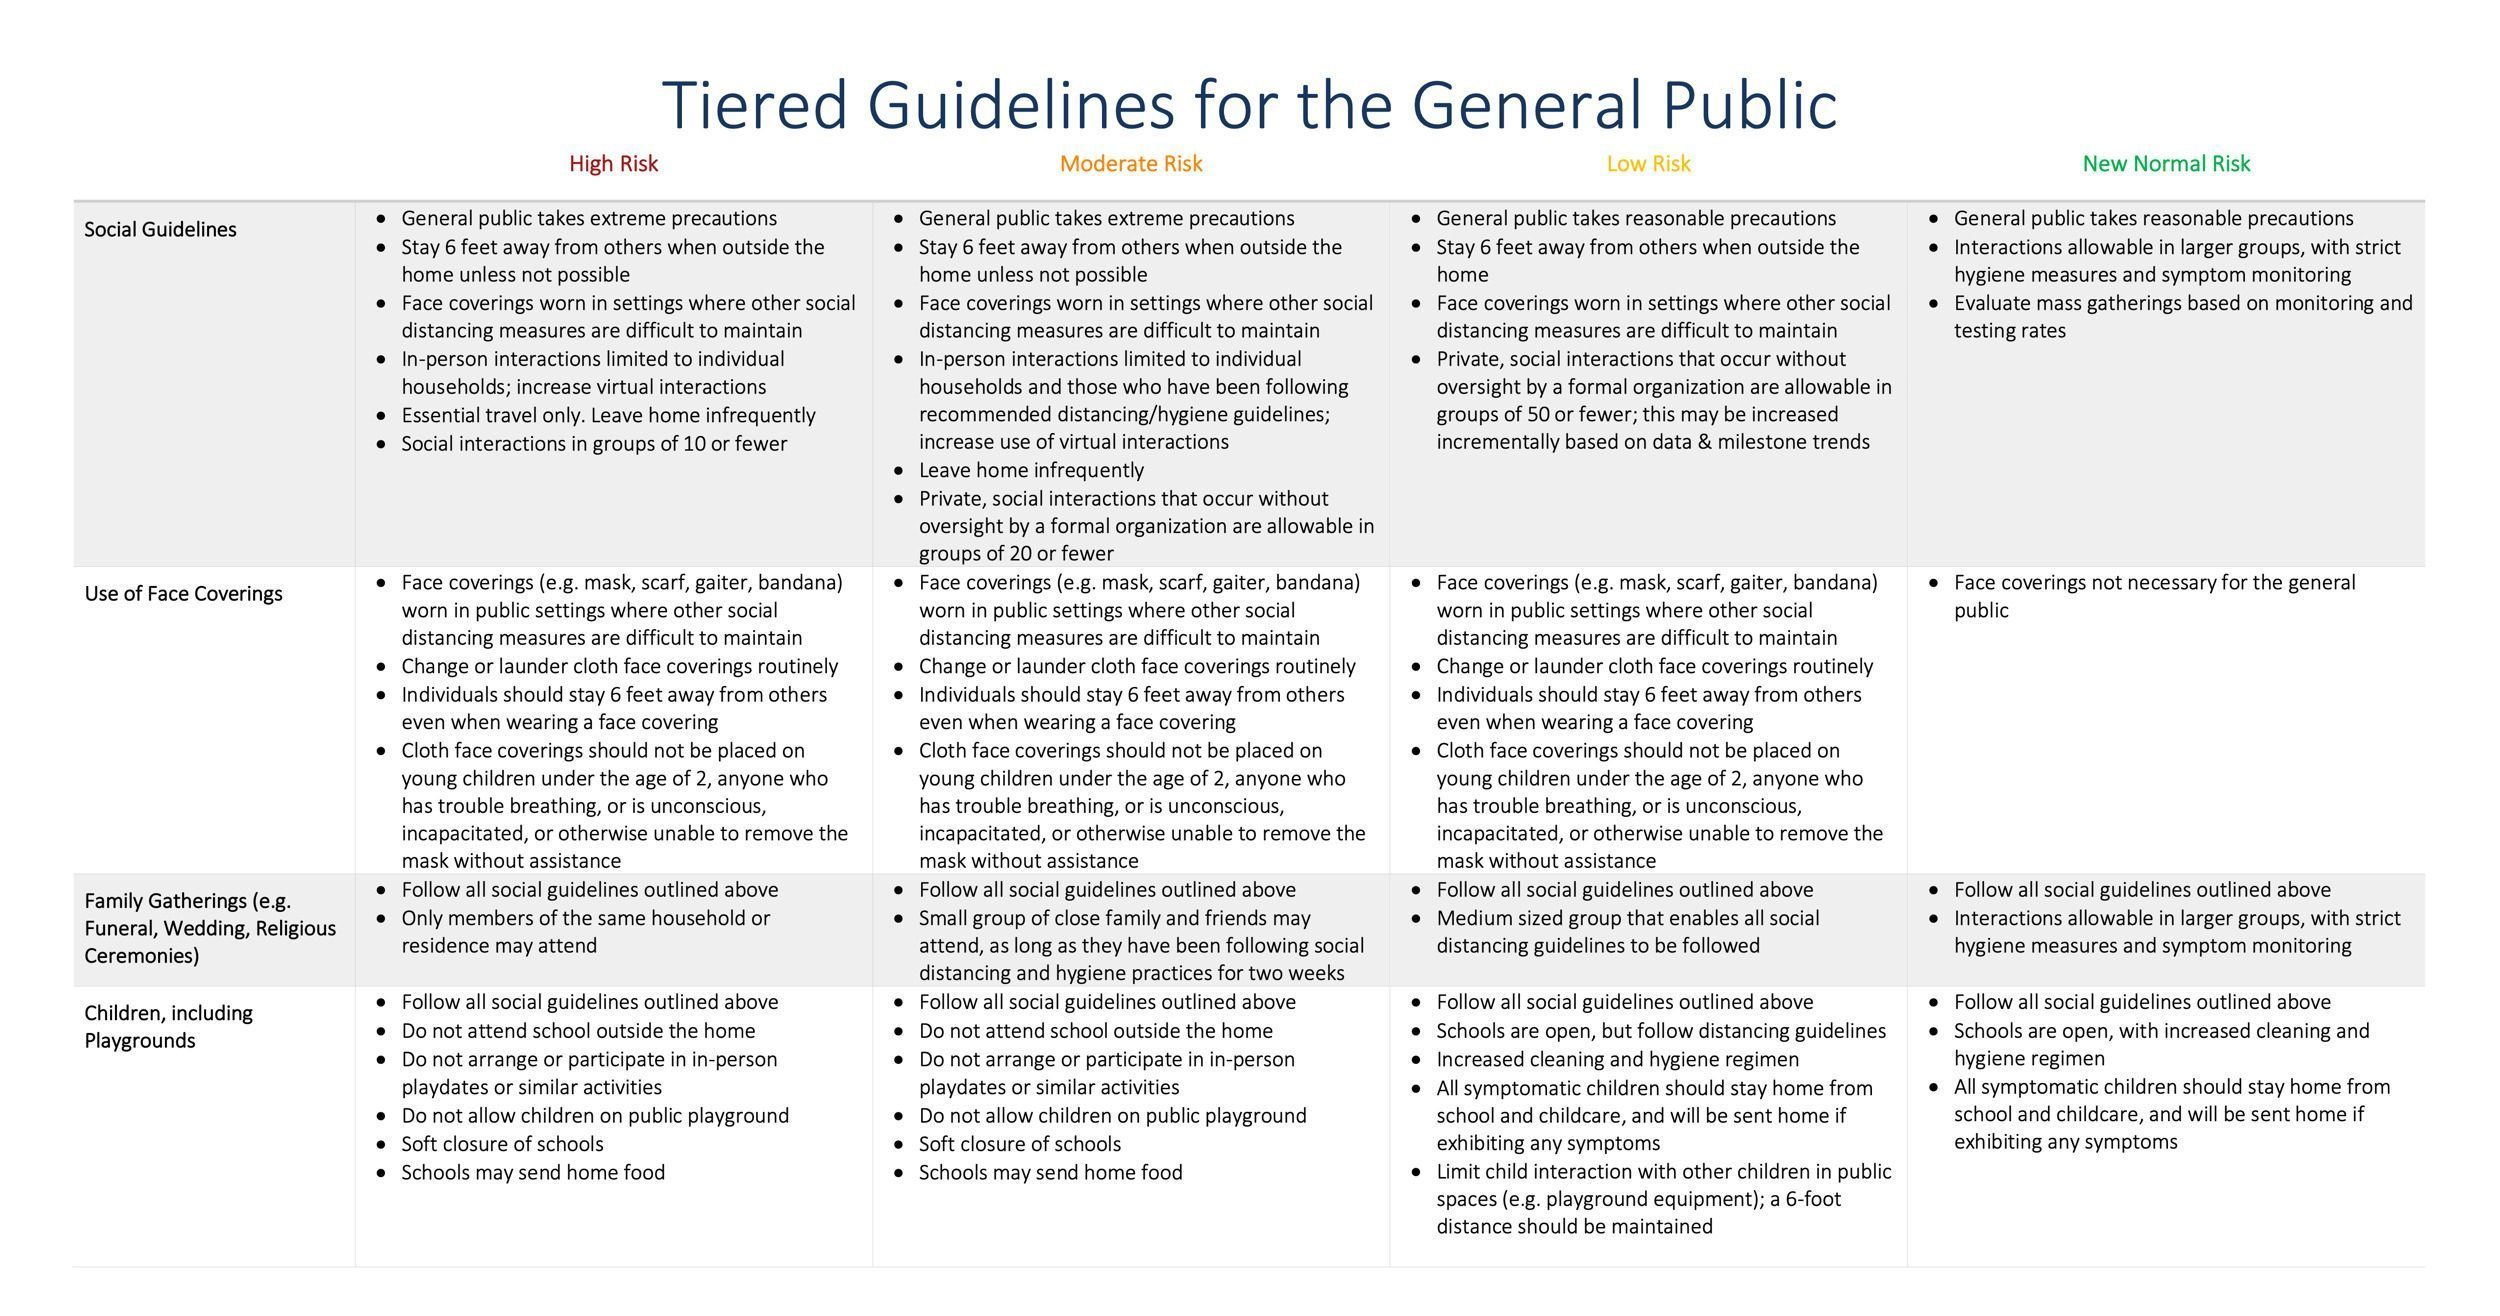 Tiered guidelines for the public in Utah